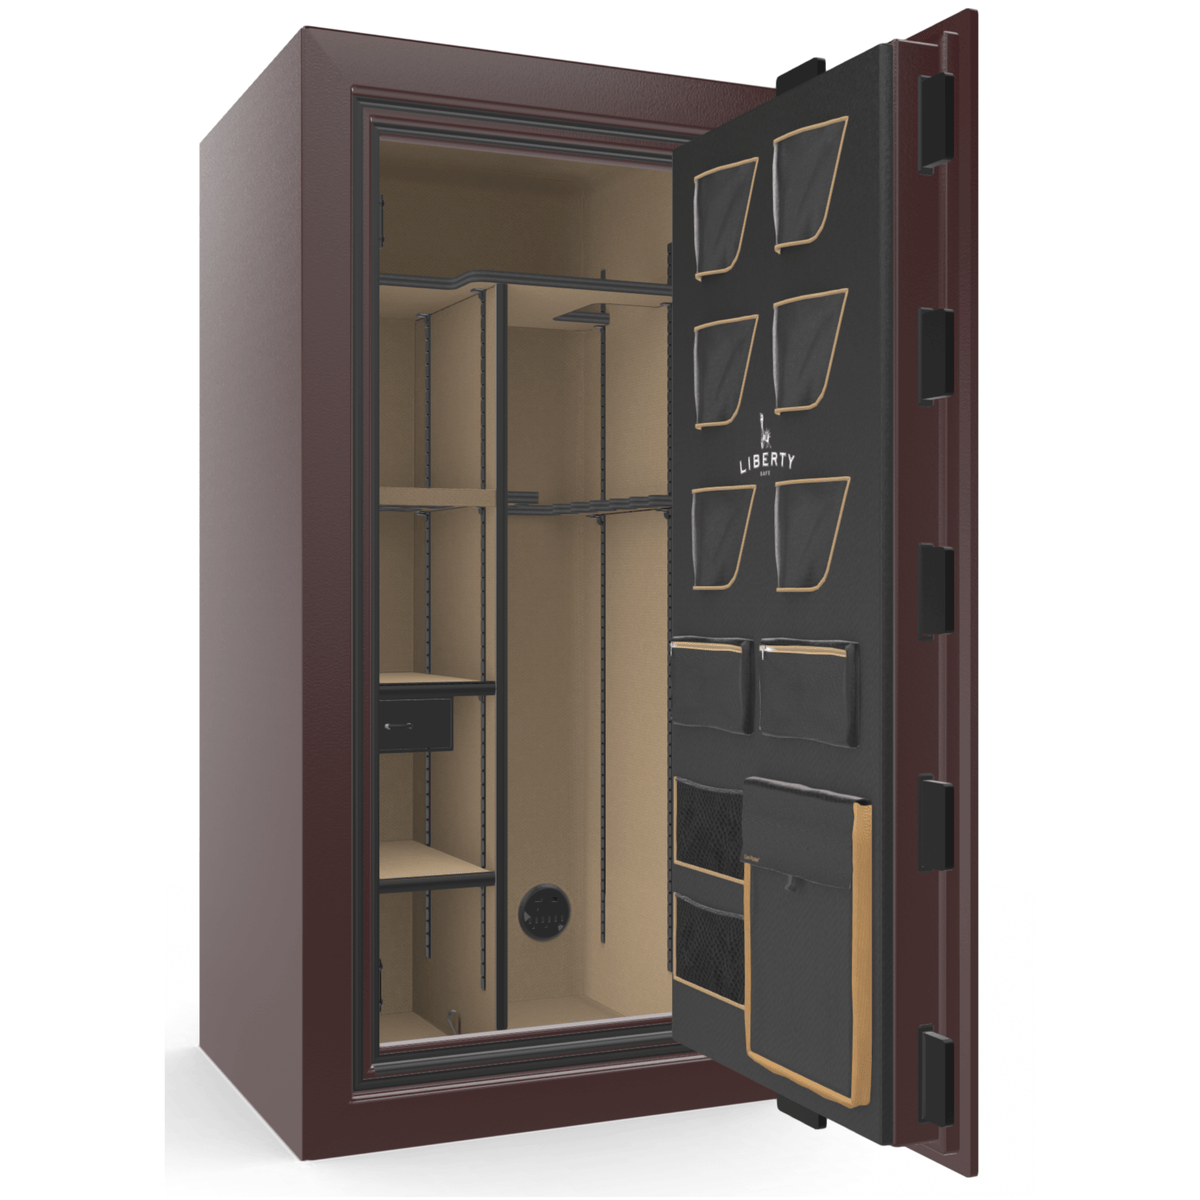 "Classic Plus | 25 | Level 7 Security | 110 Minute Fire Protection | Burgundy | Brass Mechanical Lock | 60.5""(H) x 30""(W) x 29""(D)"